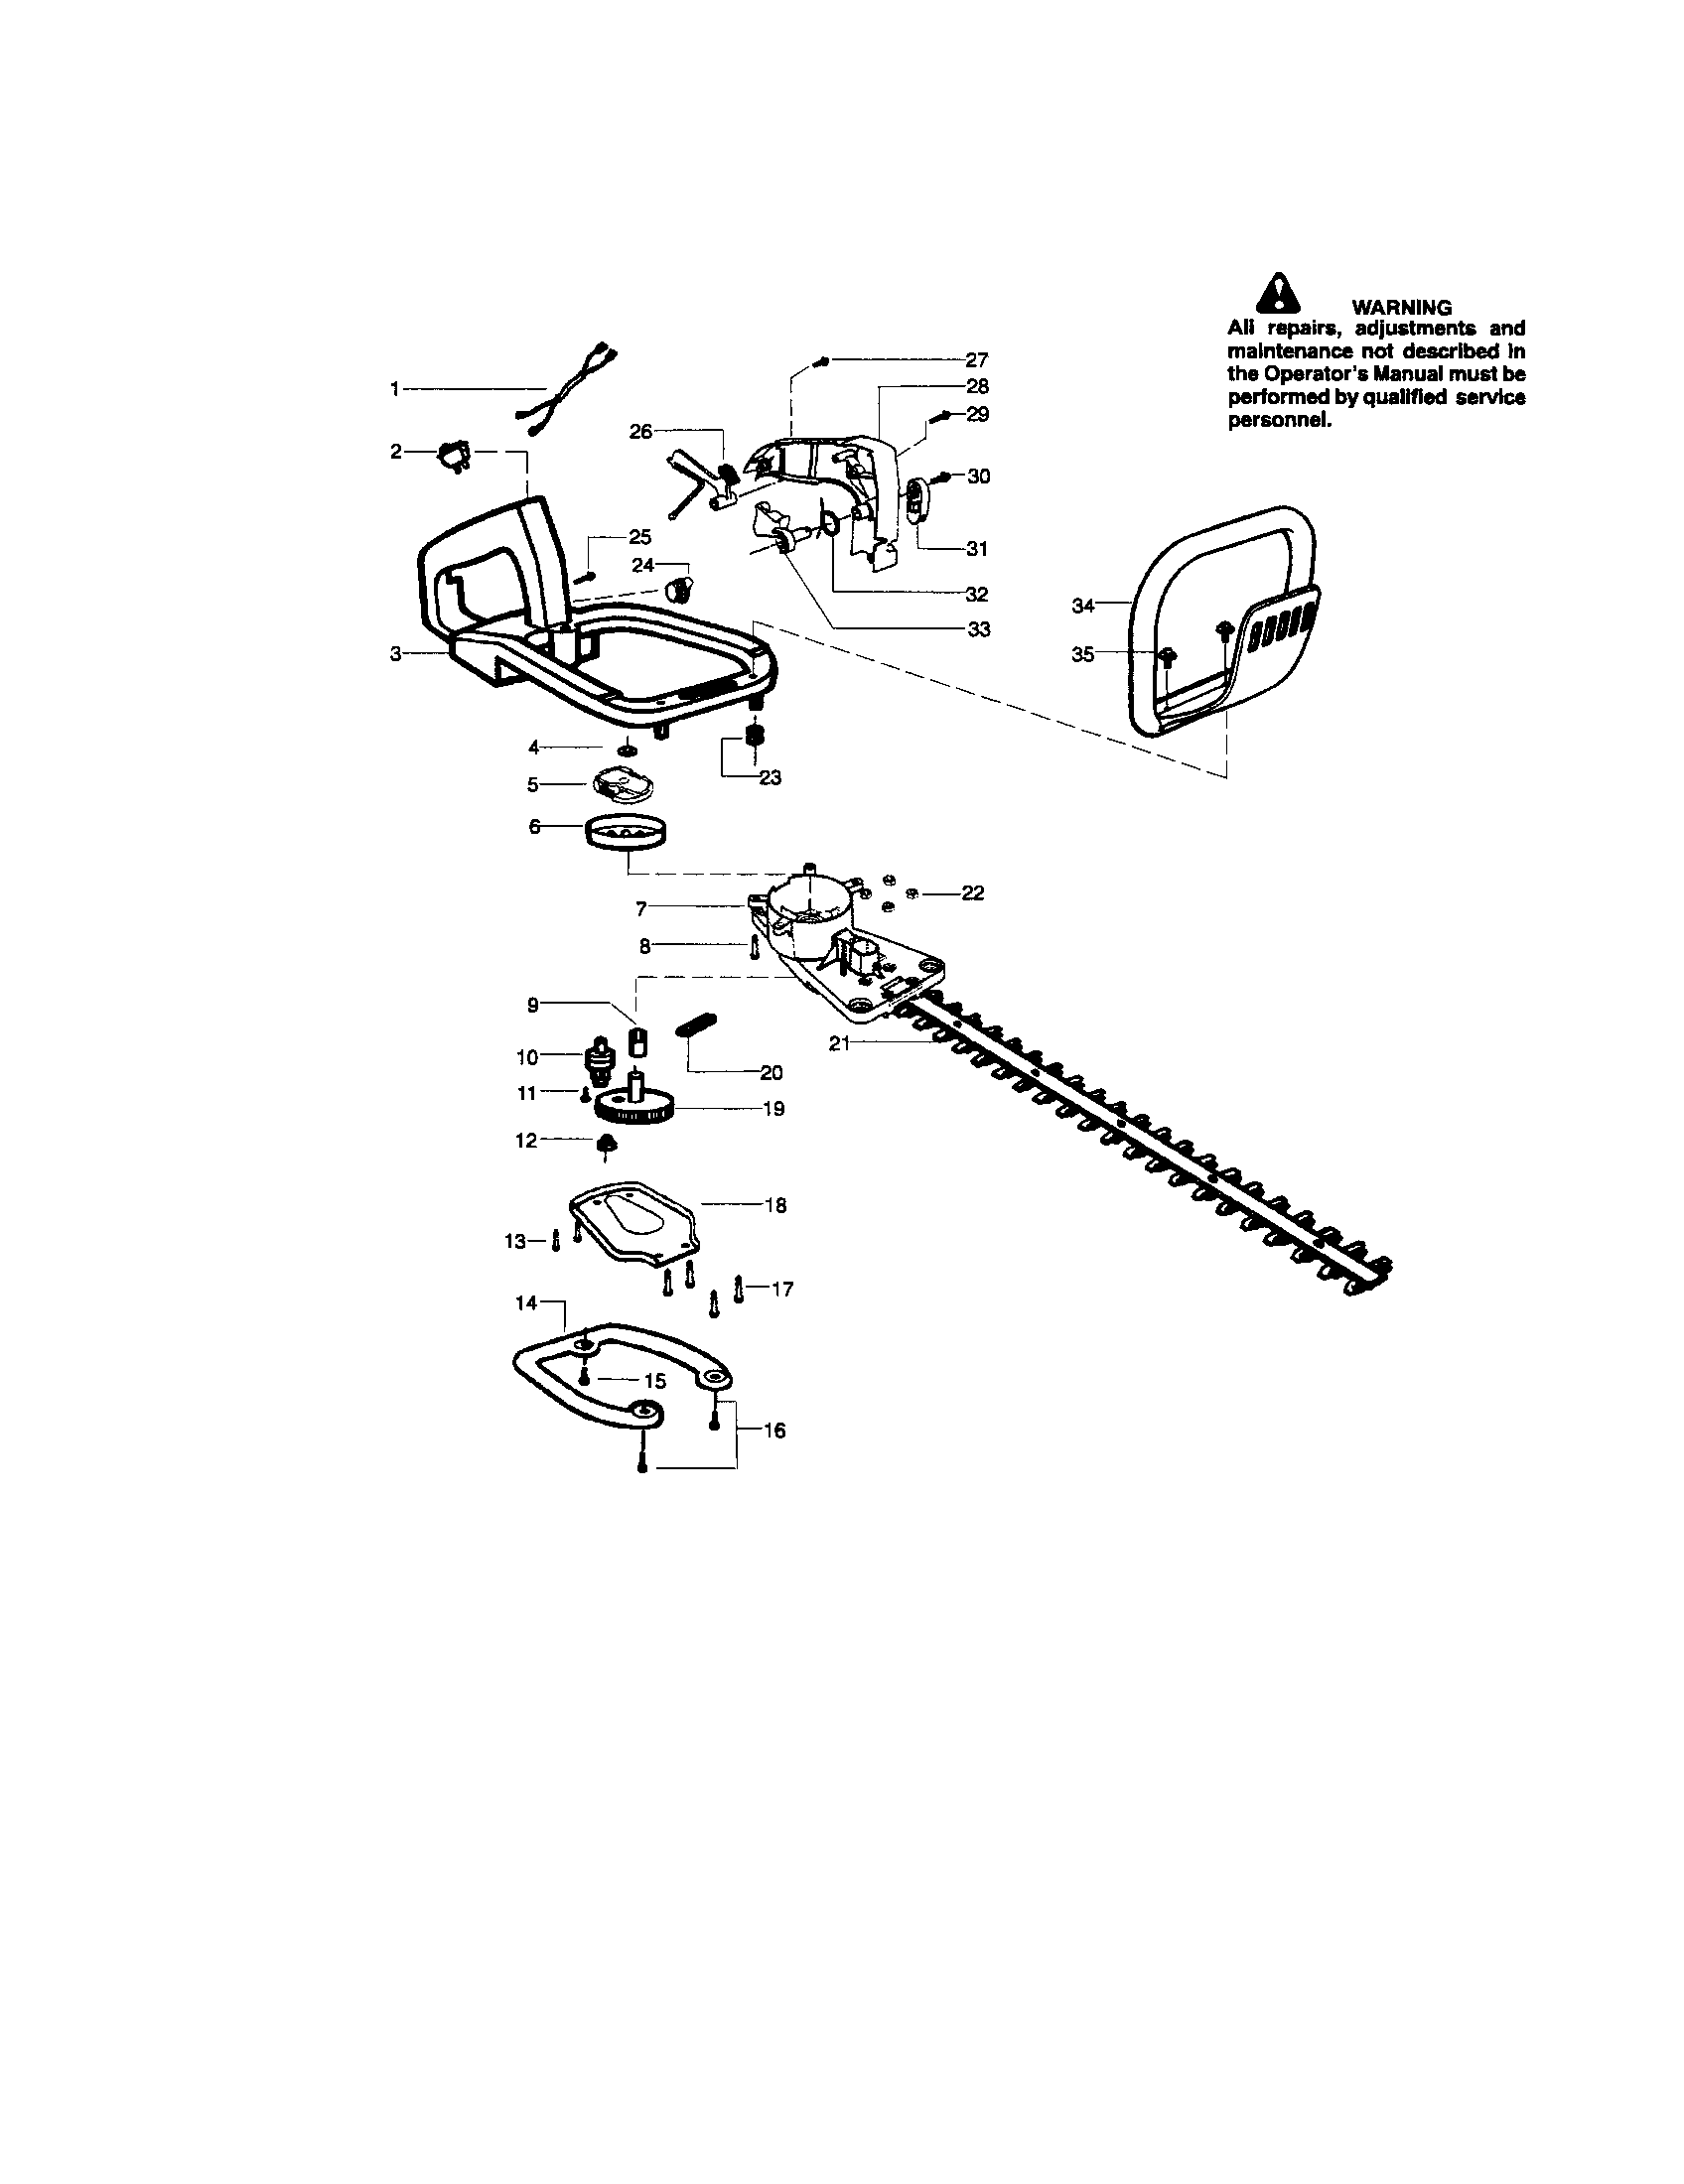 BLADE/HANDLE Diagram & Parts List for Model ght225letype5